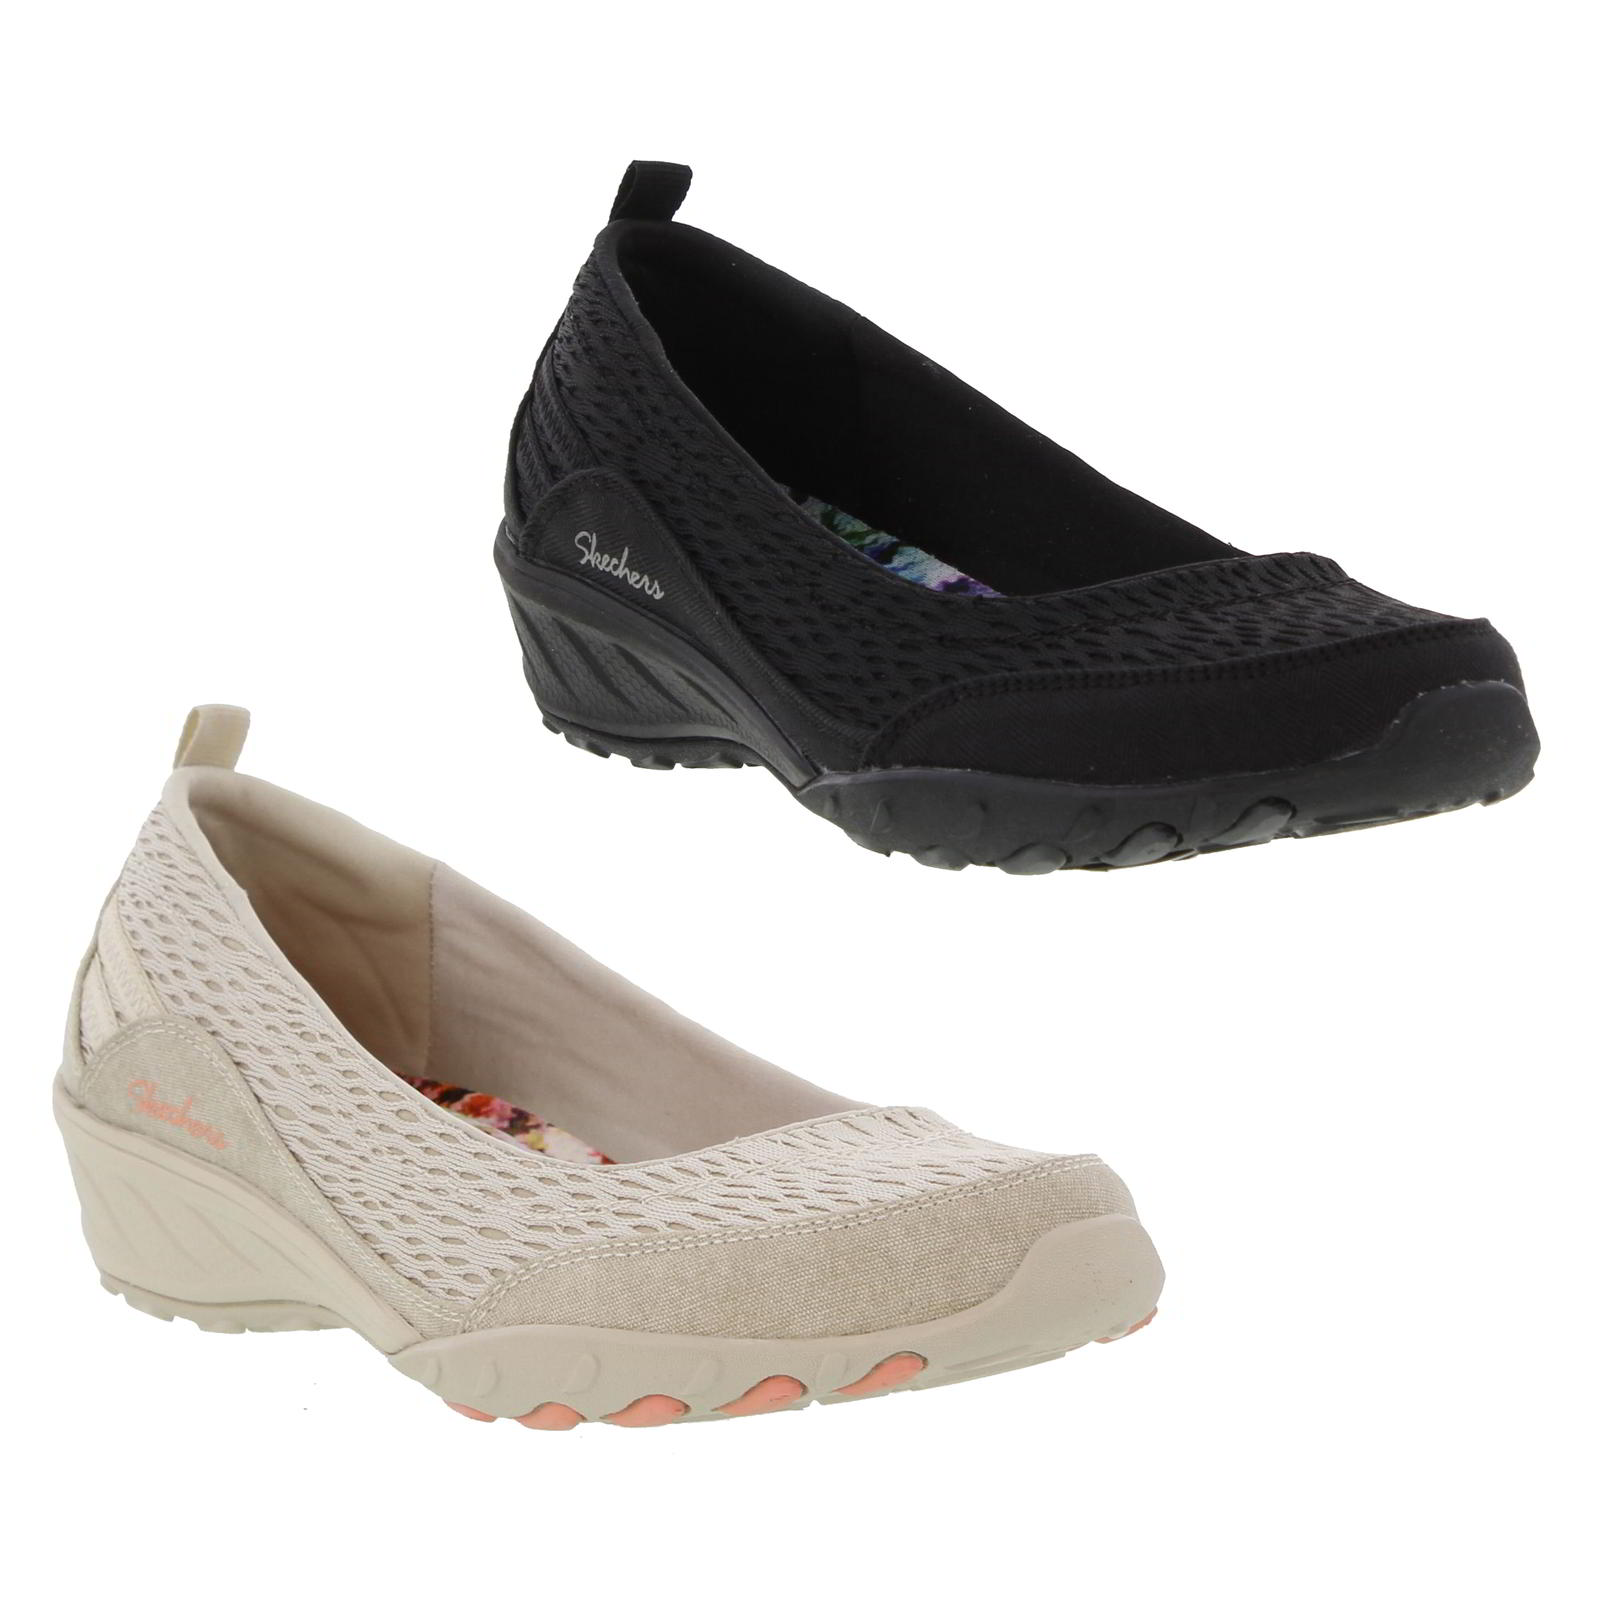 Skechers Relaxed Fit Savvy Winsome Womens Slip On Shoes